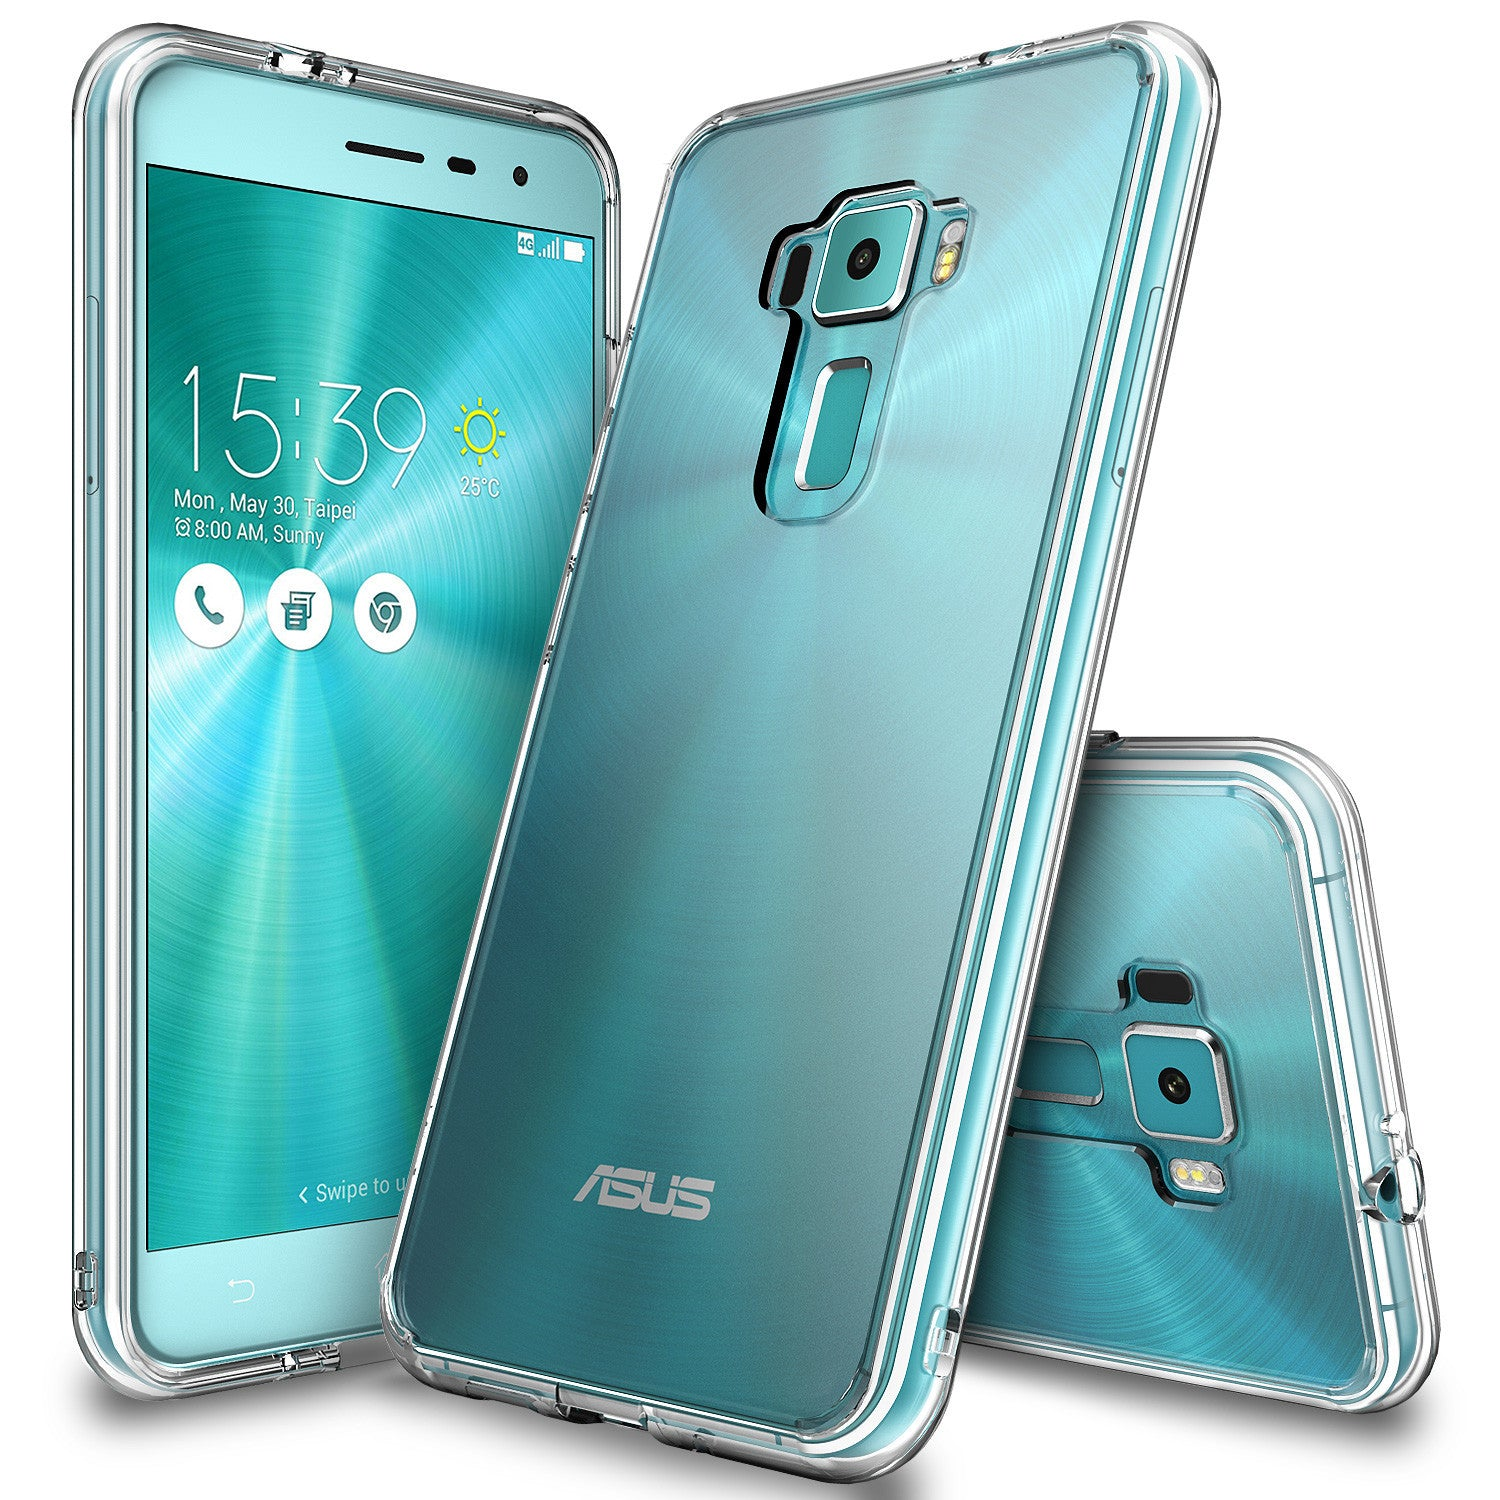 zenfone 3 case, ringke fusioncrystal clear pc back tpu bumper case